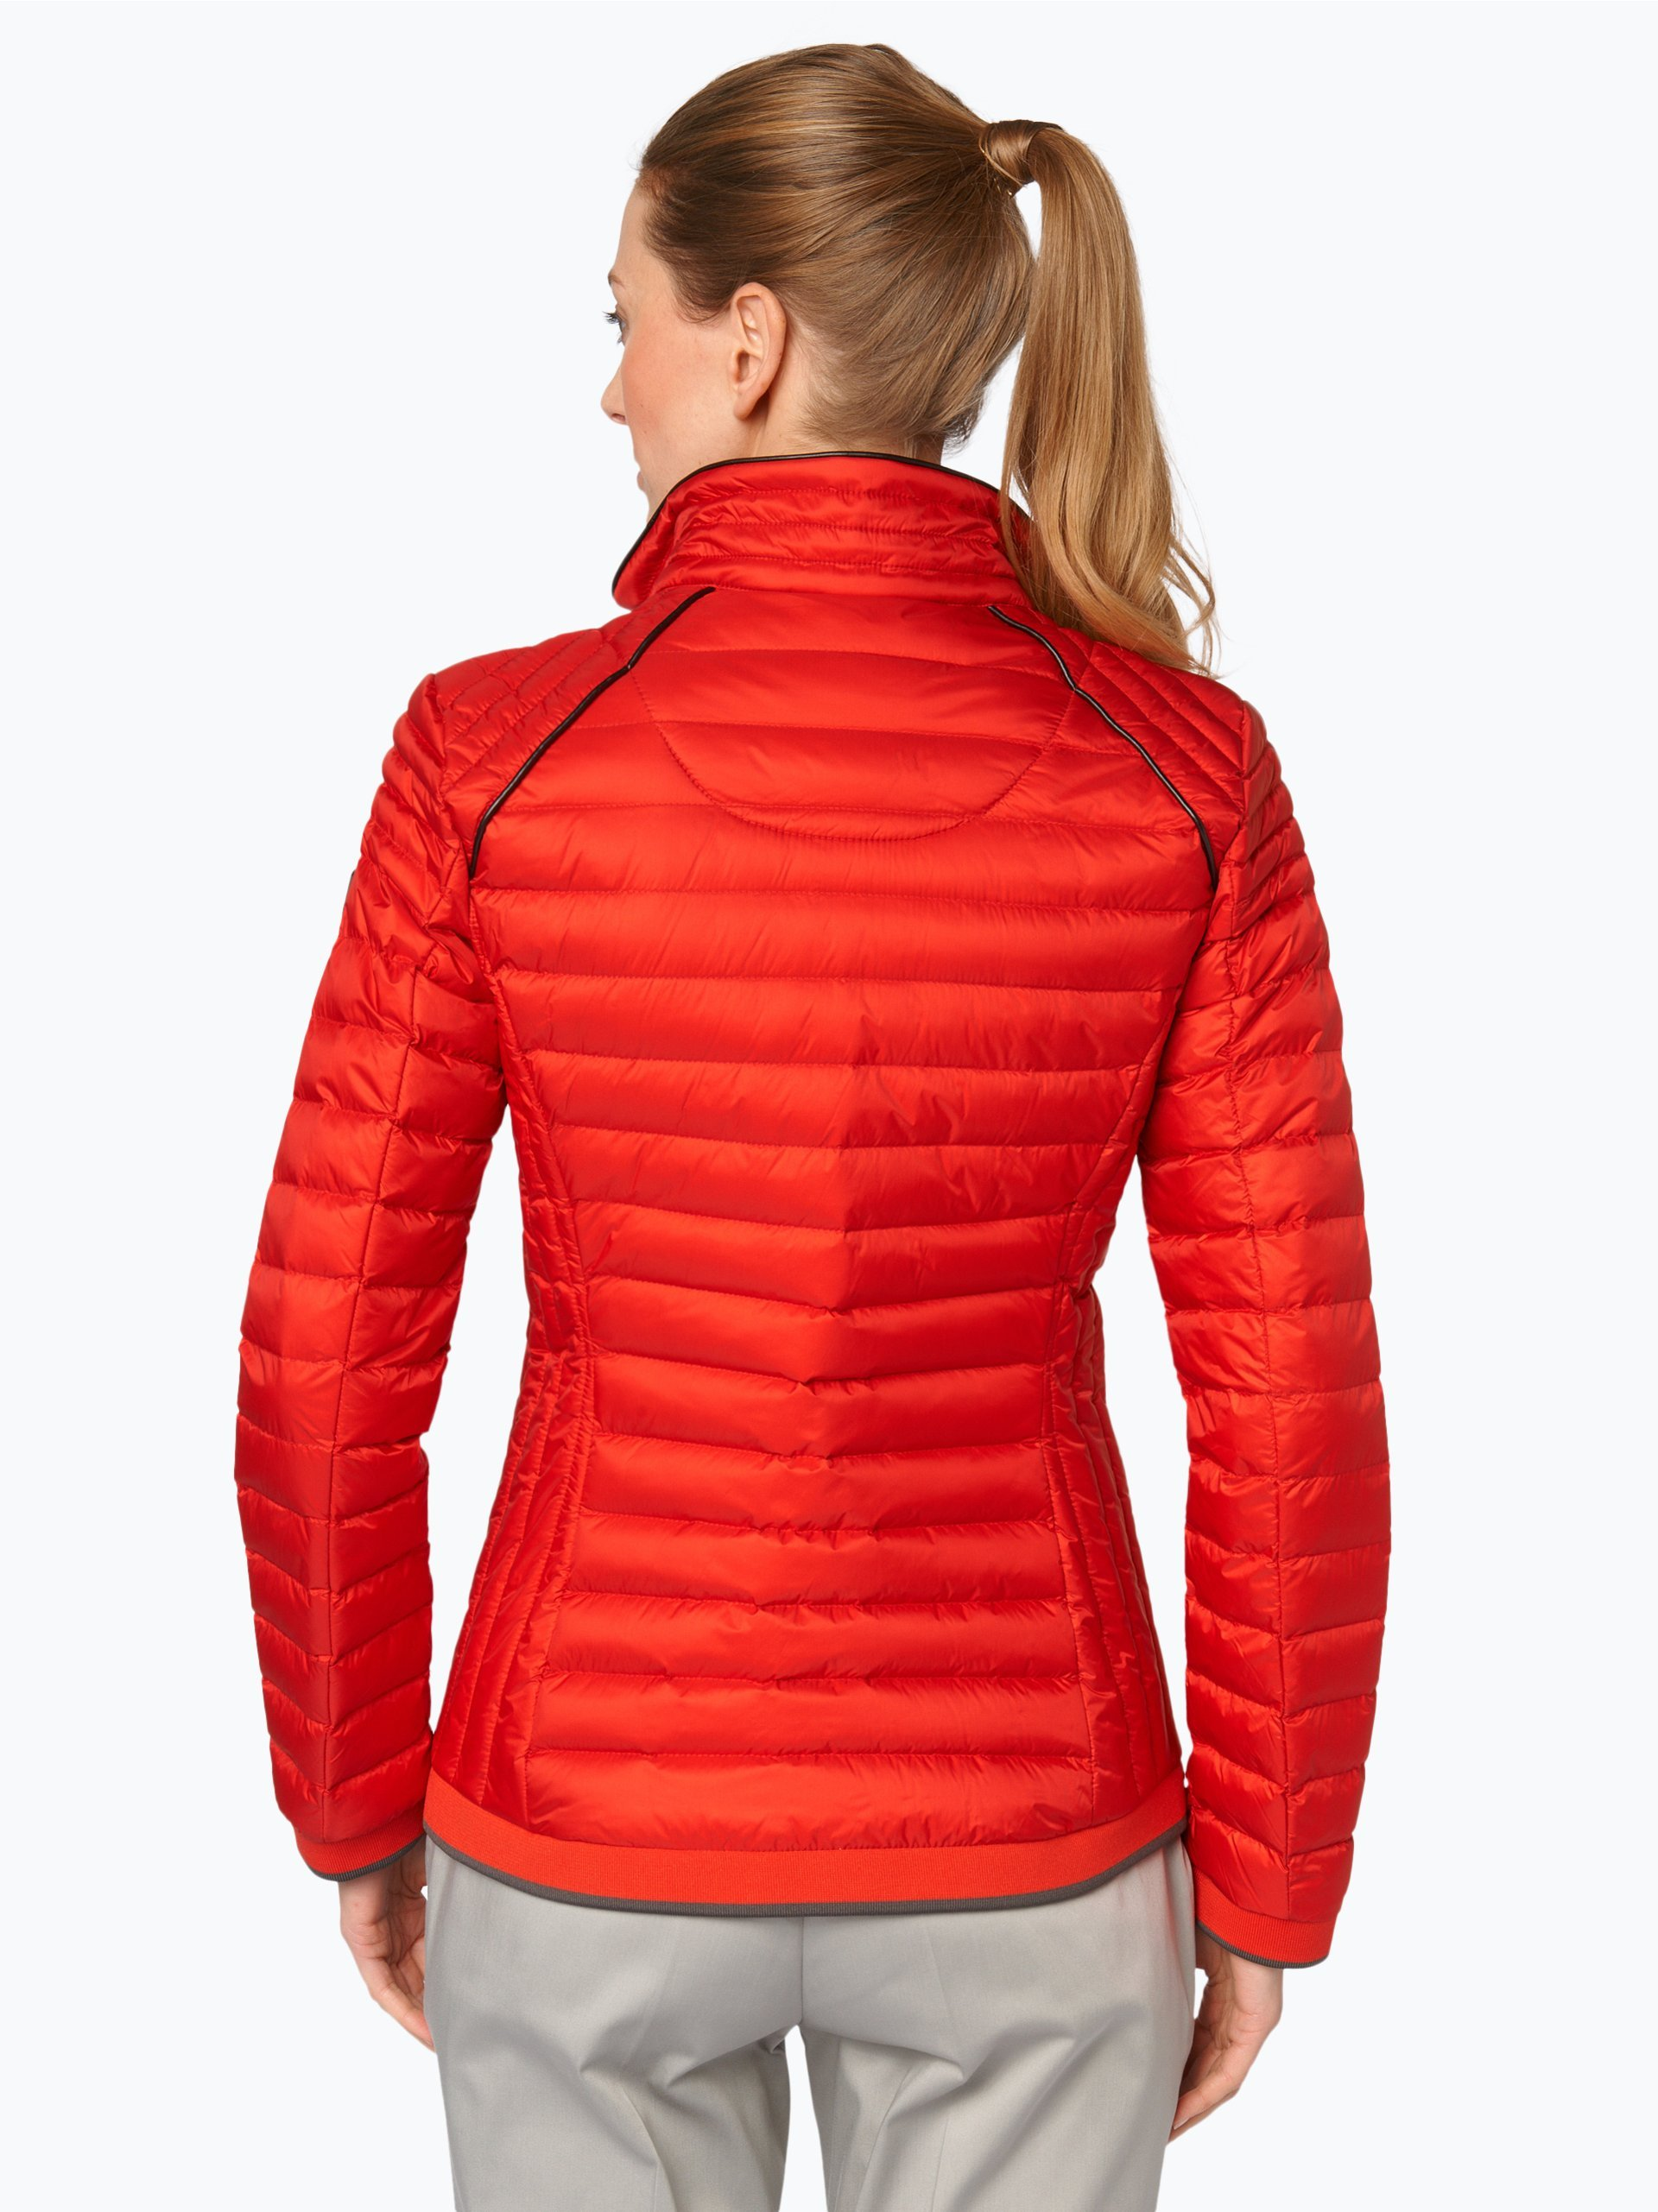 Wellensteyn steppjacke rot